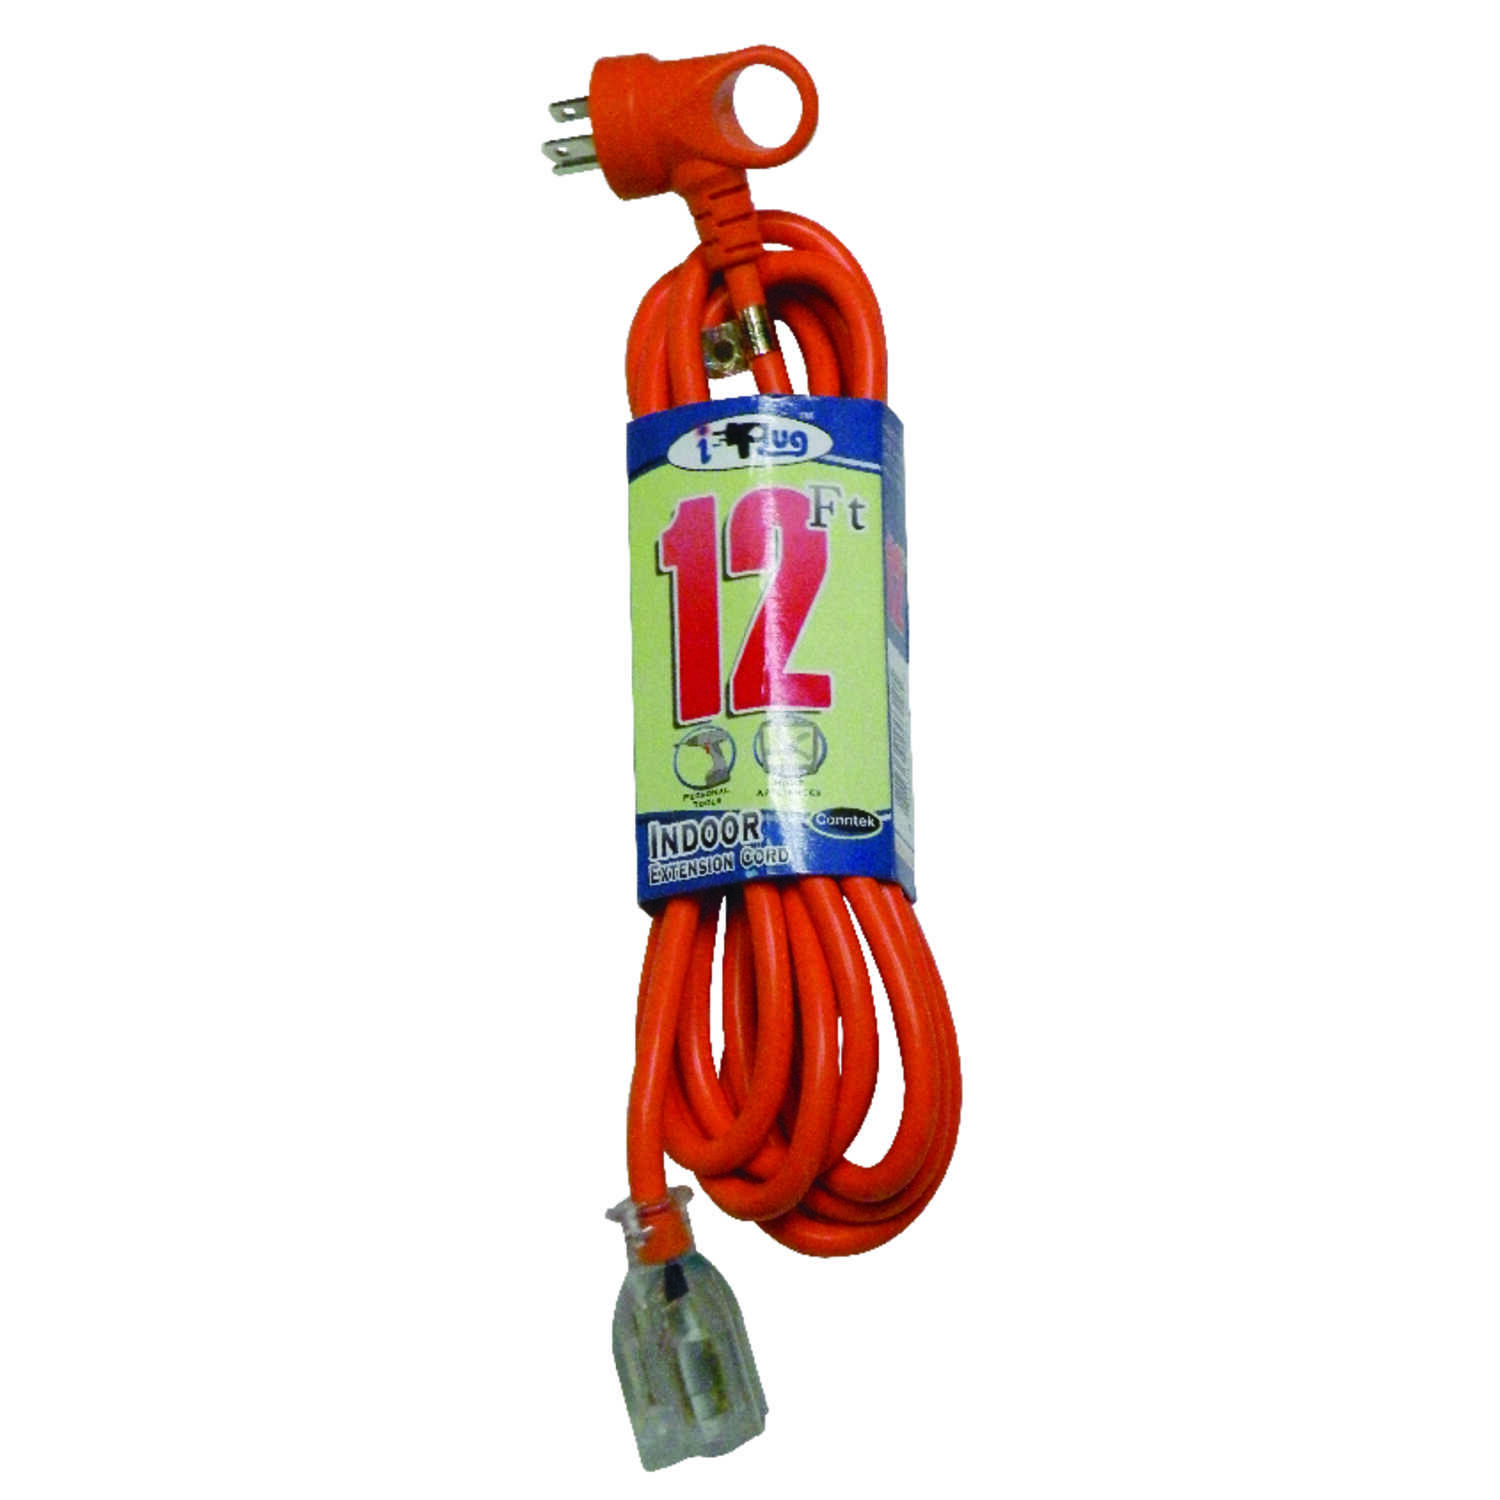 Conntek  Indoor  Extension Cord  16/3 SJT  12 ft. L Orange